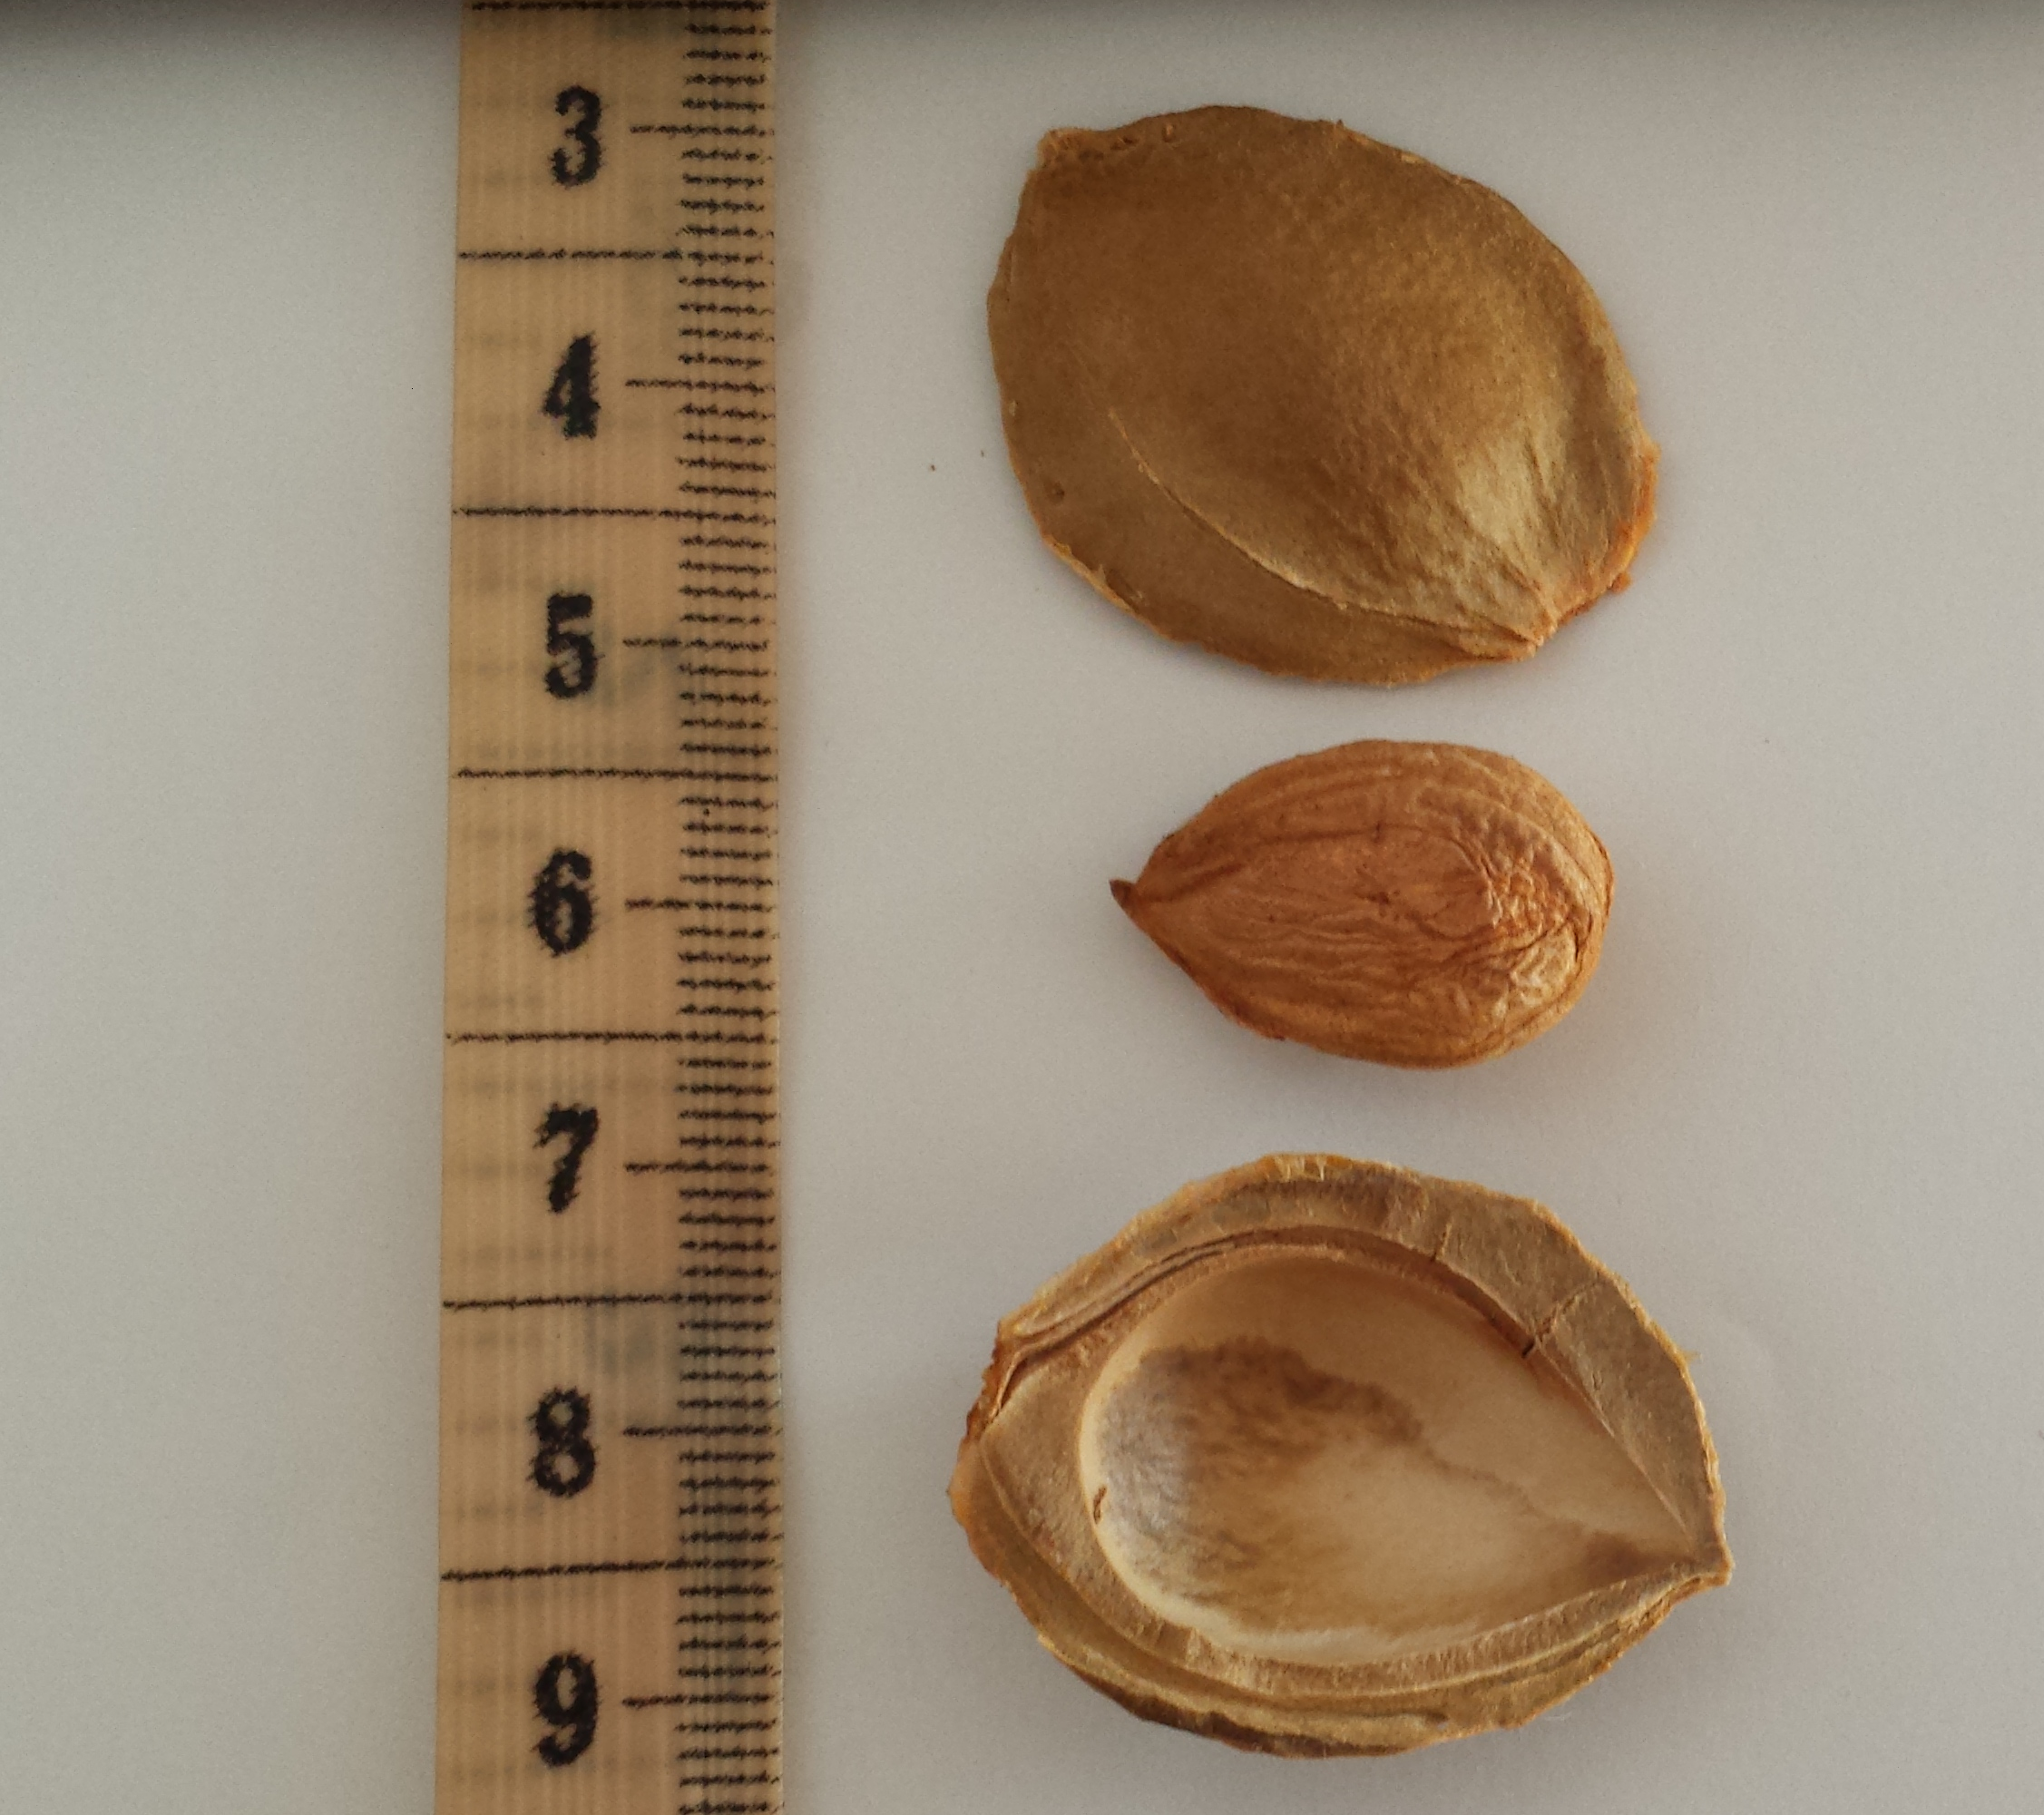 Man develops cyanide poisoning from apricot kernel extract